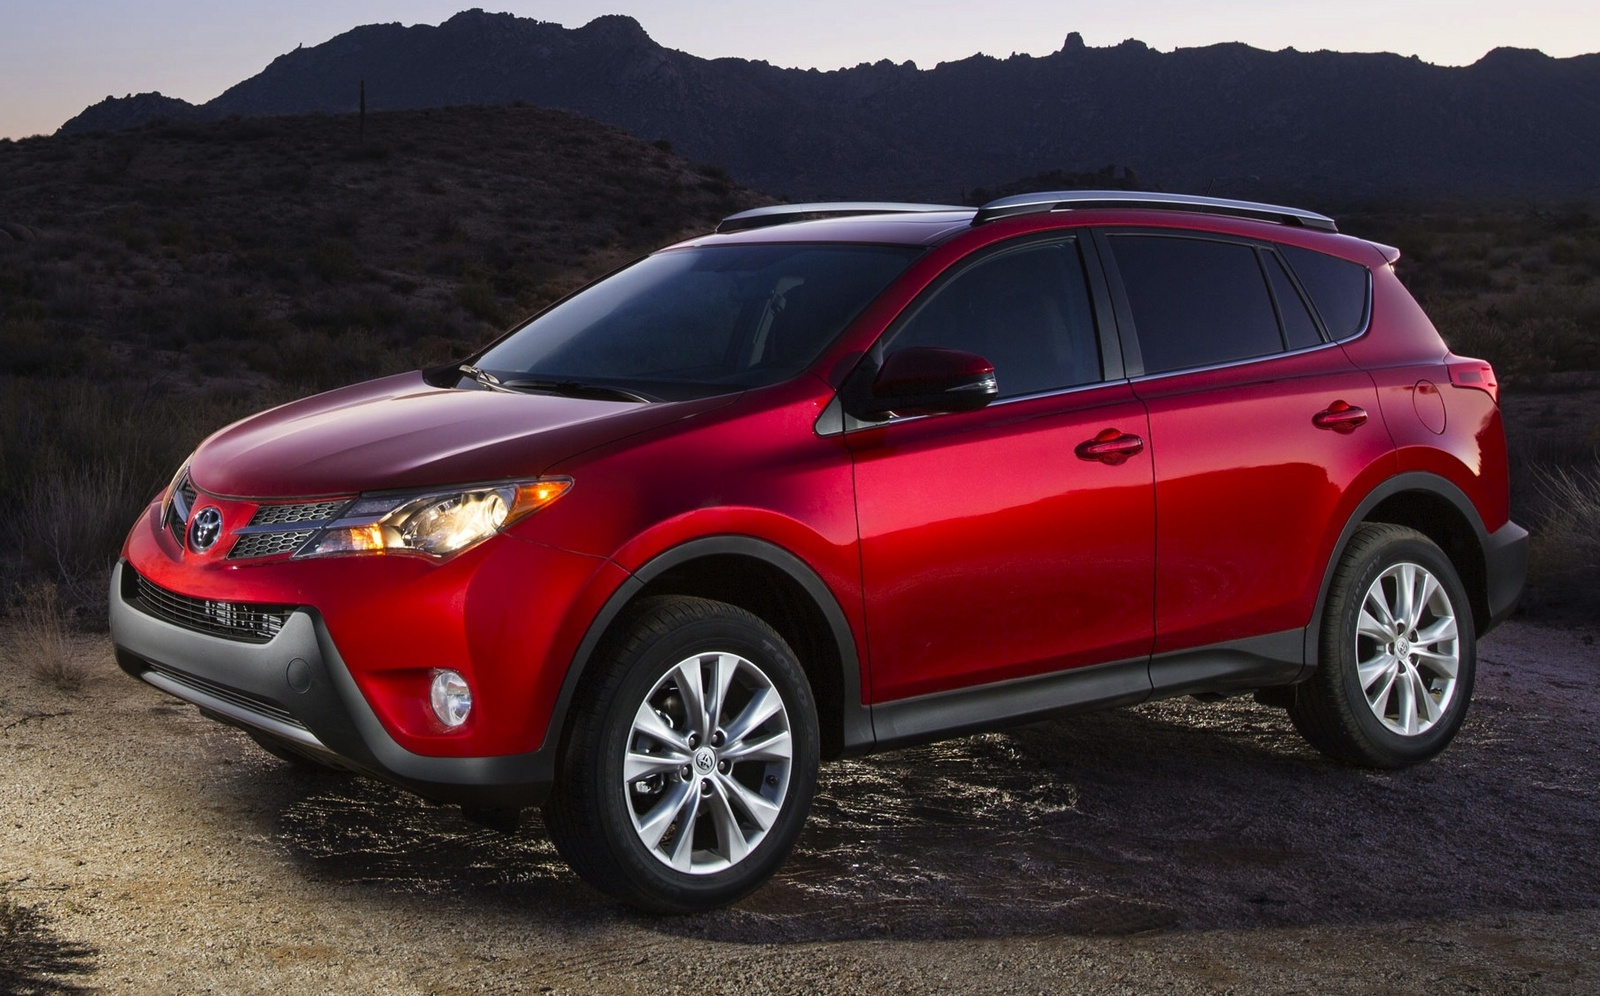 New 2015 / 2016 Toyota RAV4 For Sale - CarGurus